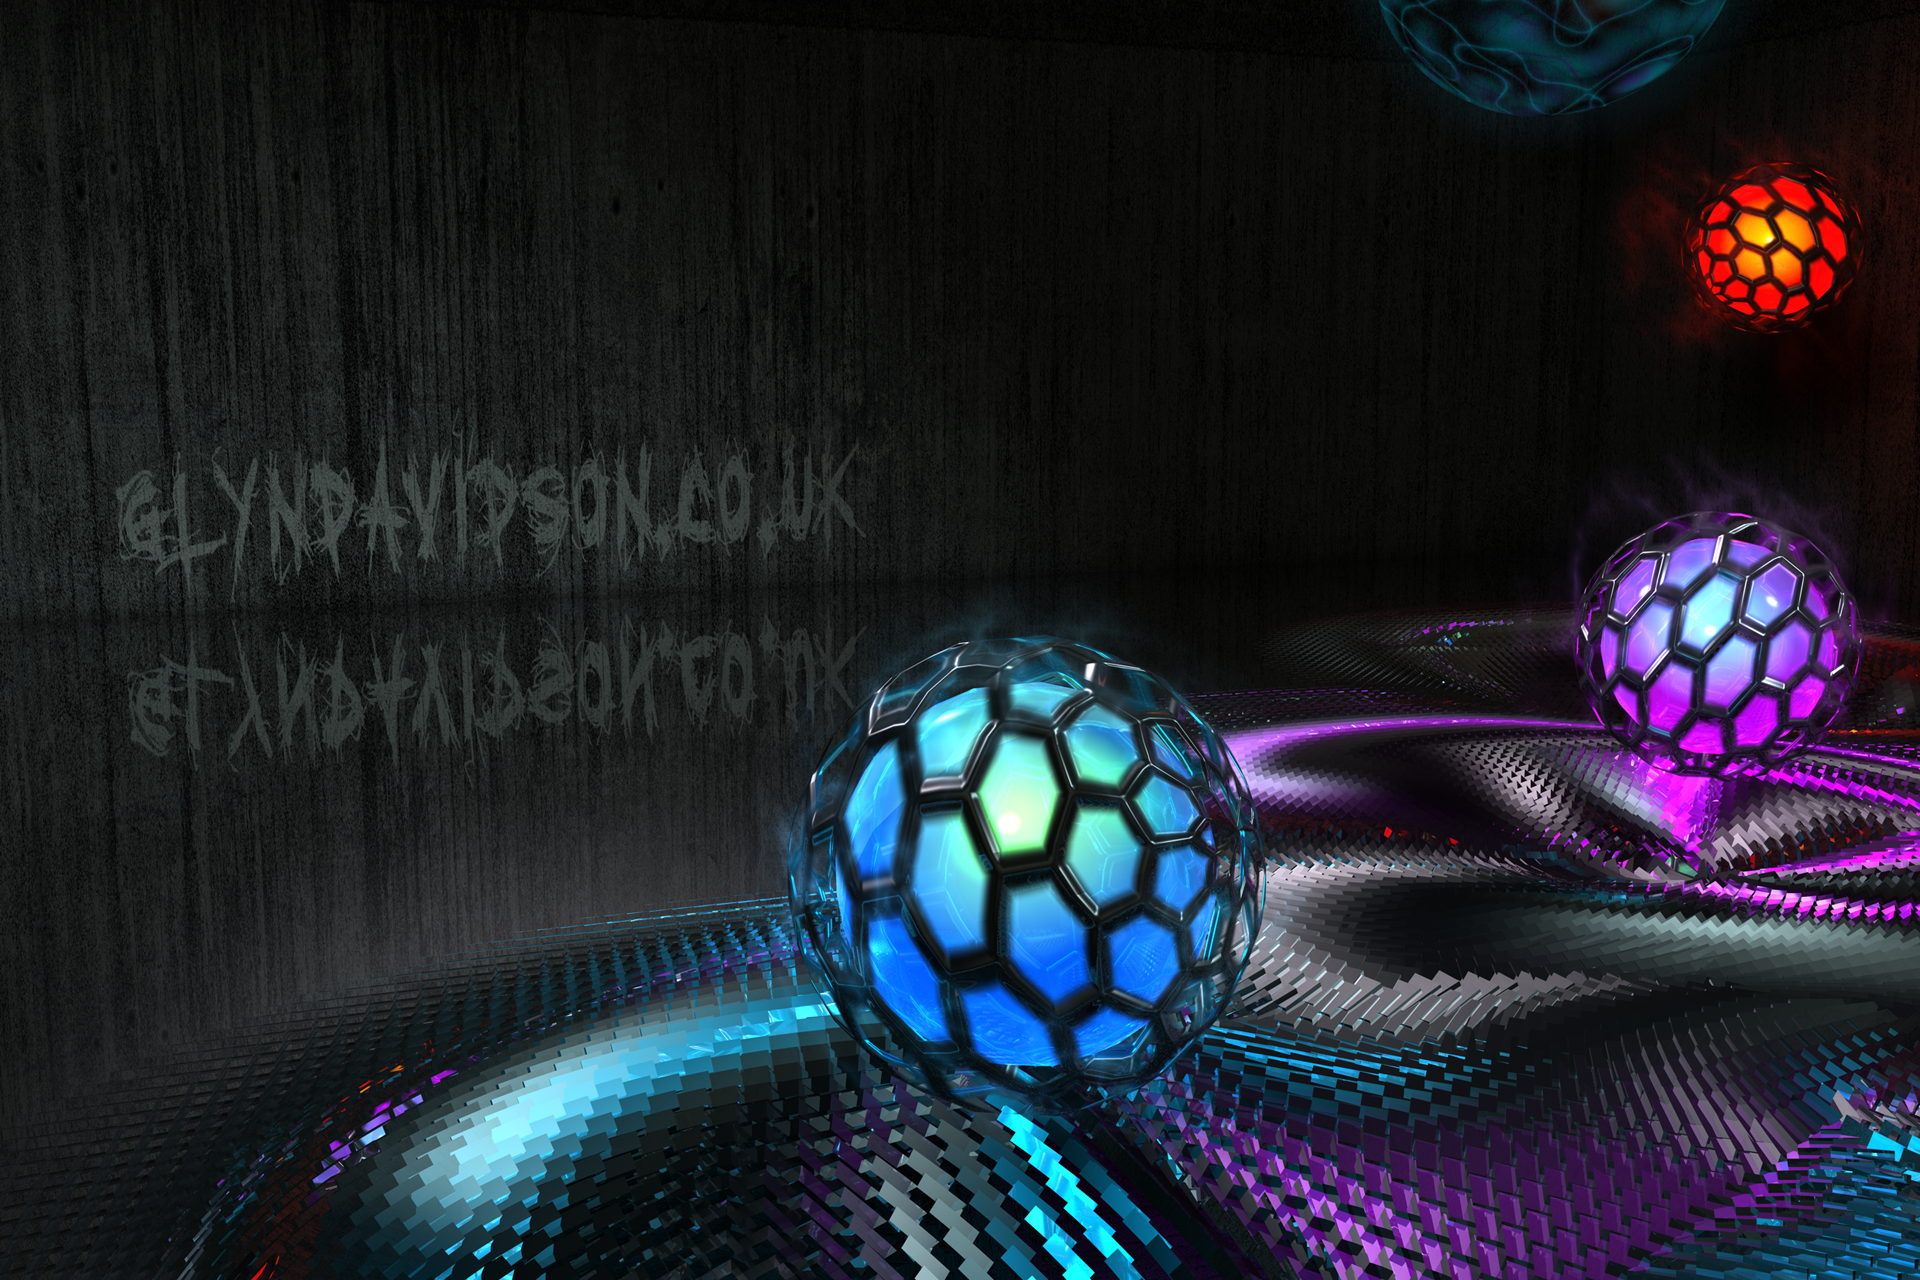 Free download Cinema 4D Mograph wallpaper by TheRealGlyph